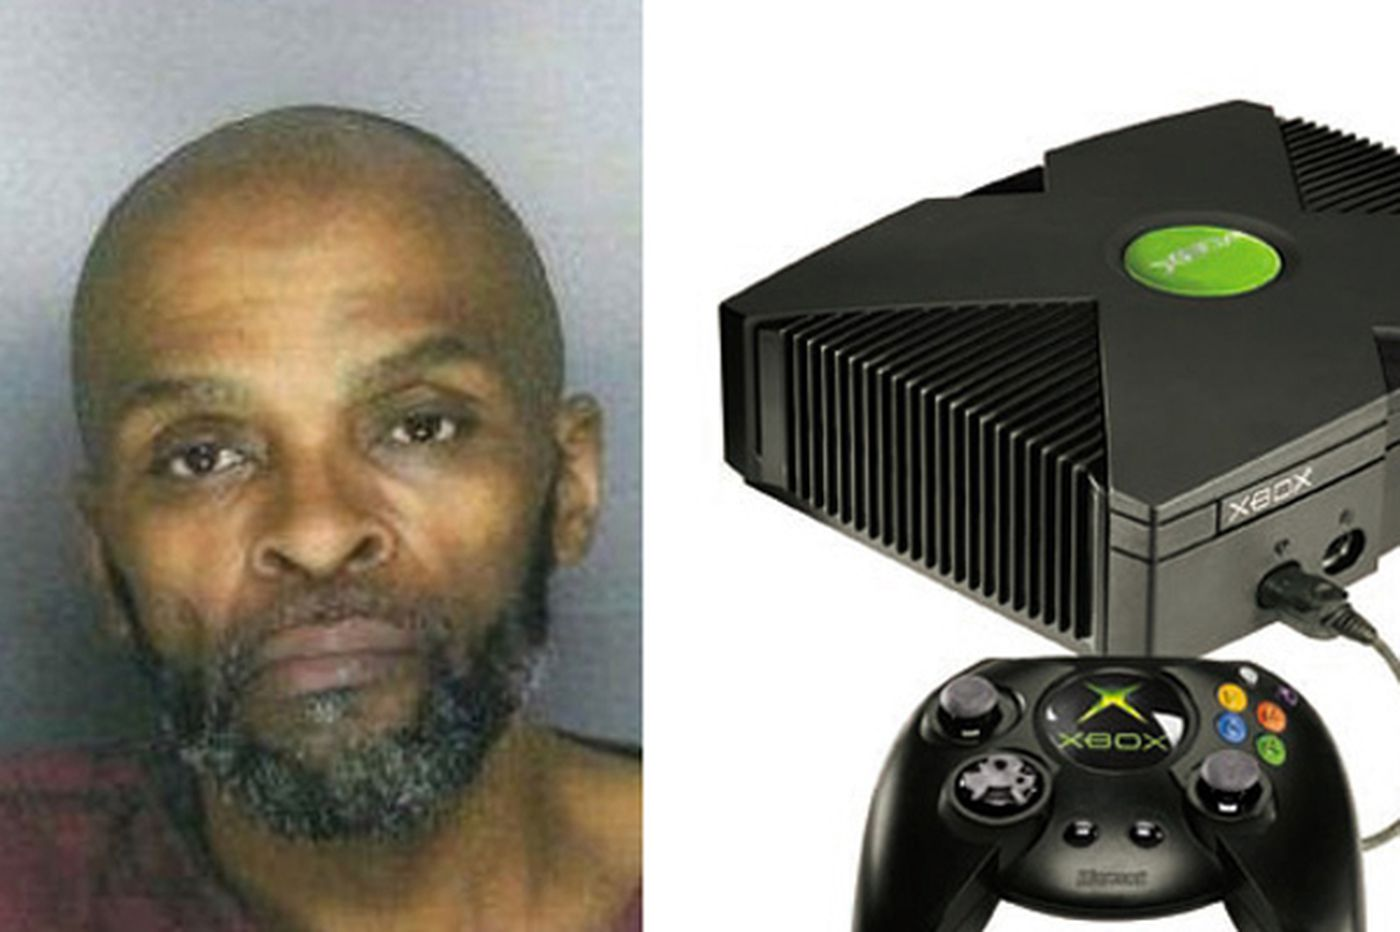 Wheelchair-bound man arrested for Xbox stabbing